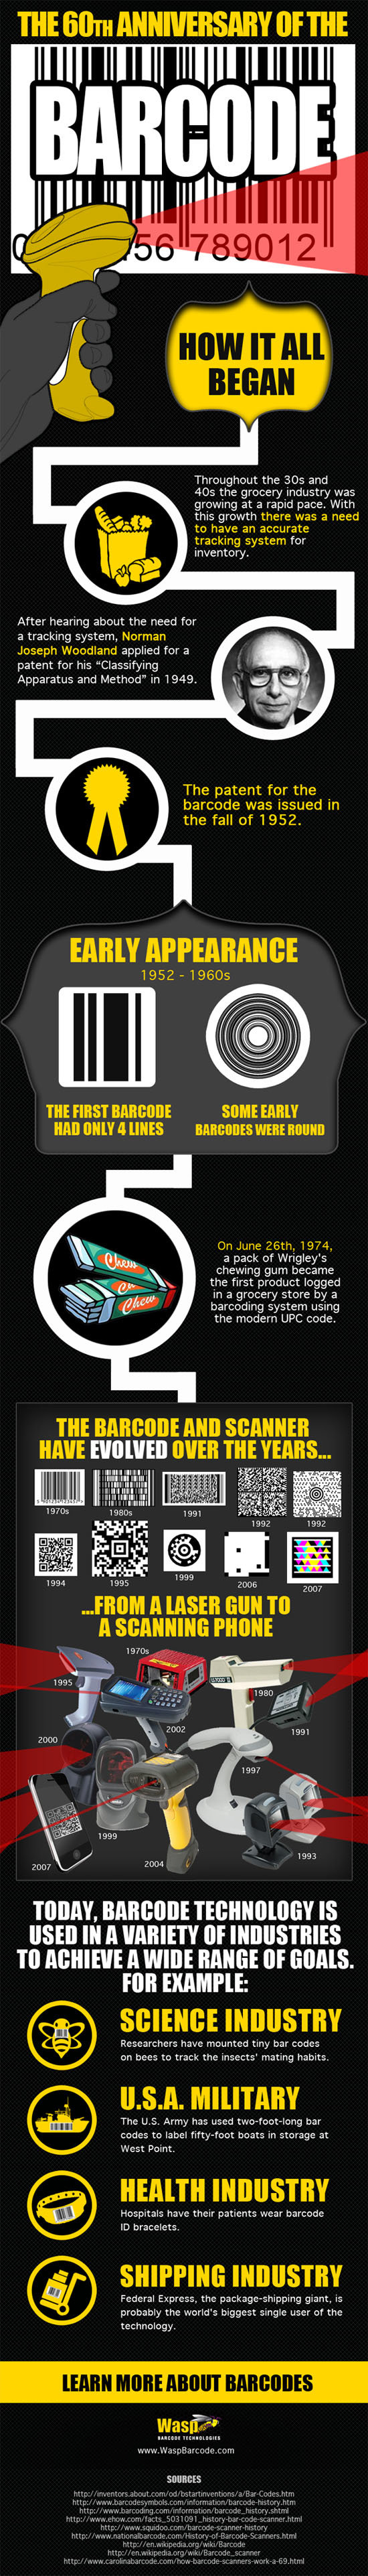 The 60th anniversary of the Barcode #infographic